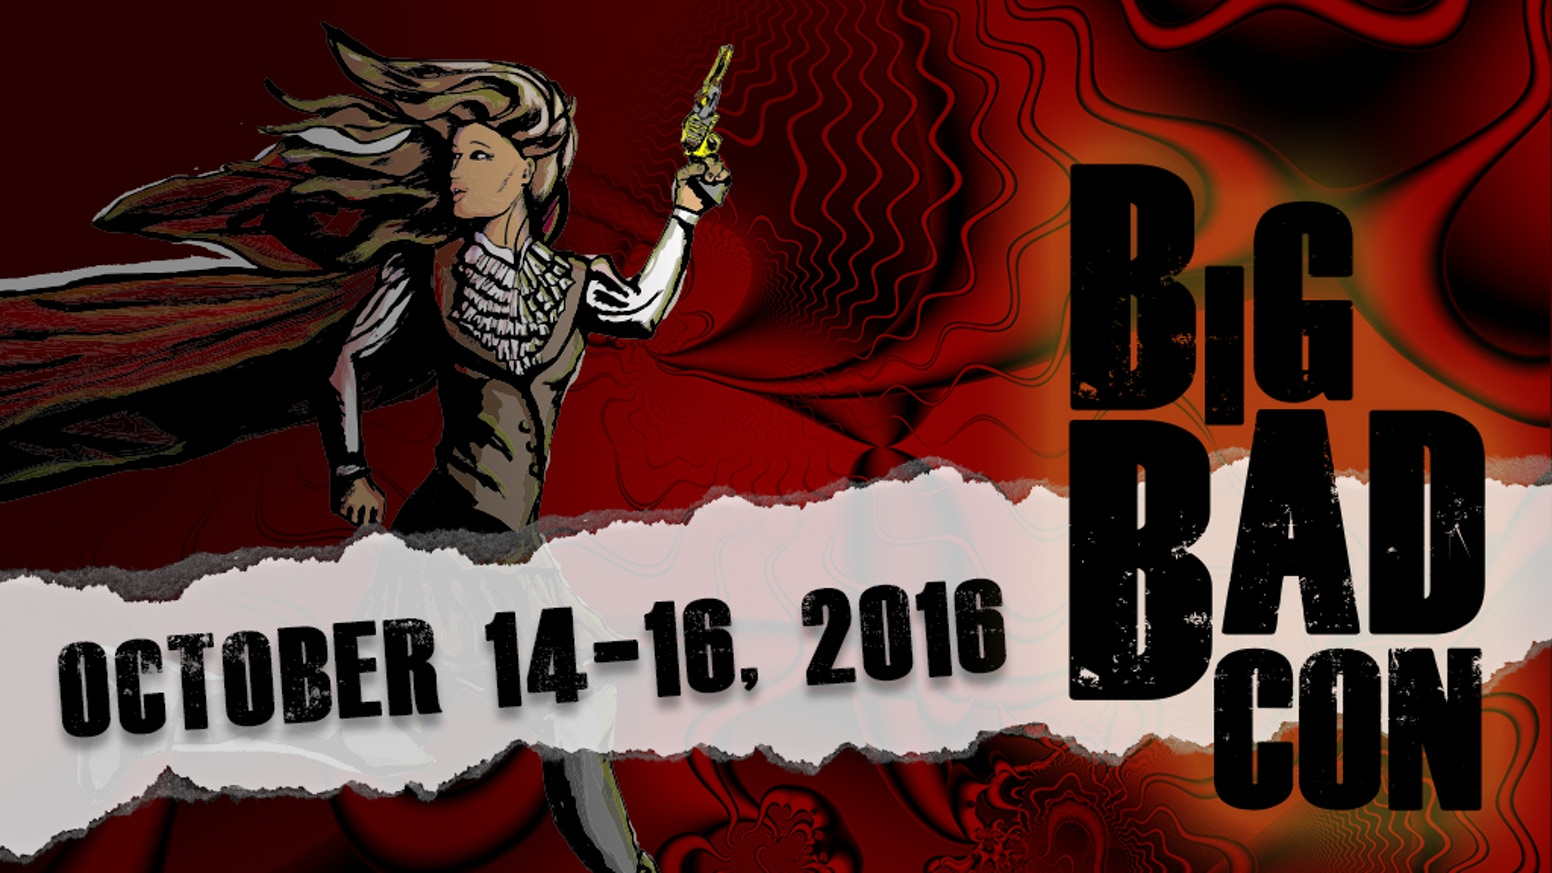 At Big Bad Con we're bringing great games and great gamers together to do great things! Come join us this October 14-16!